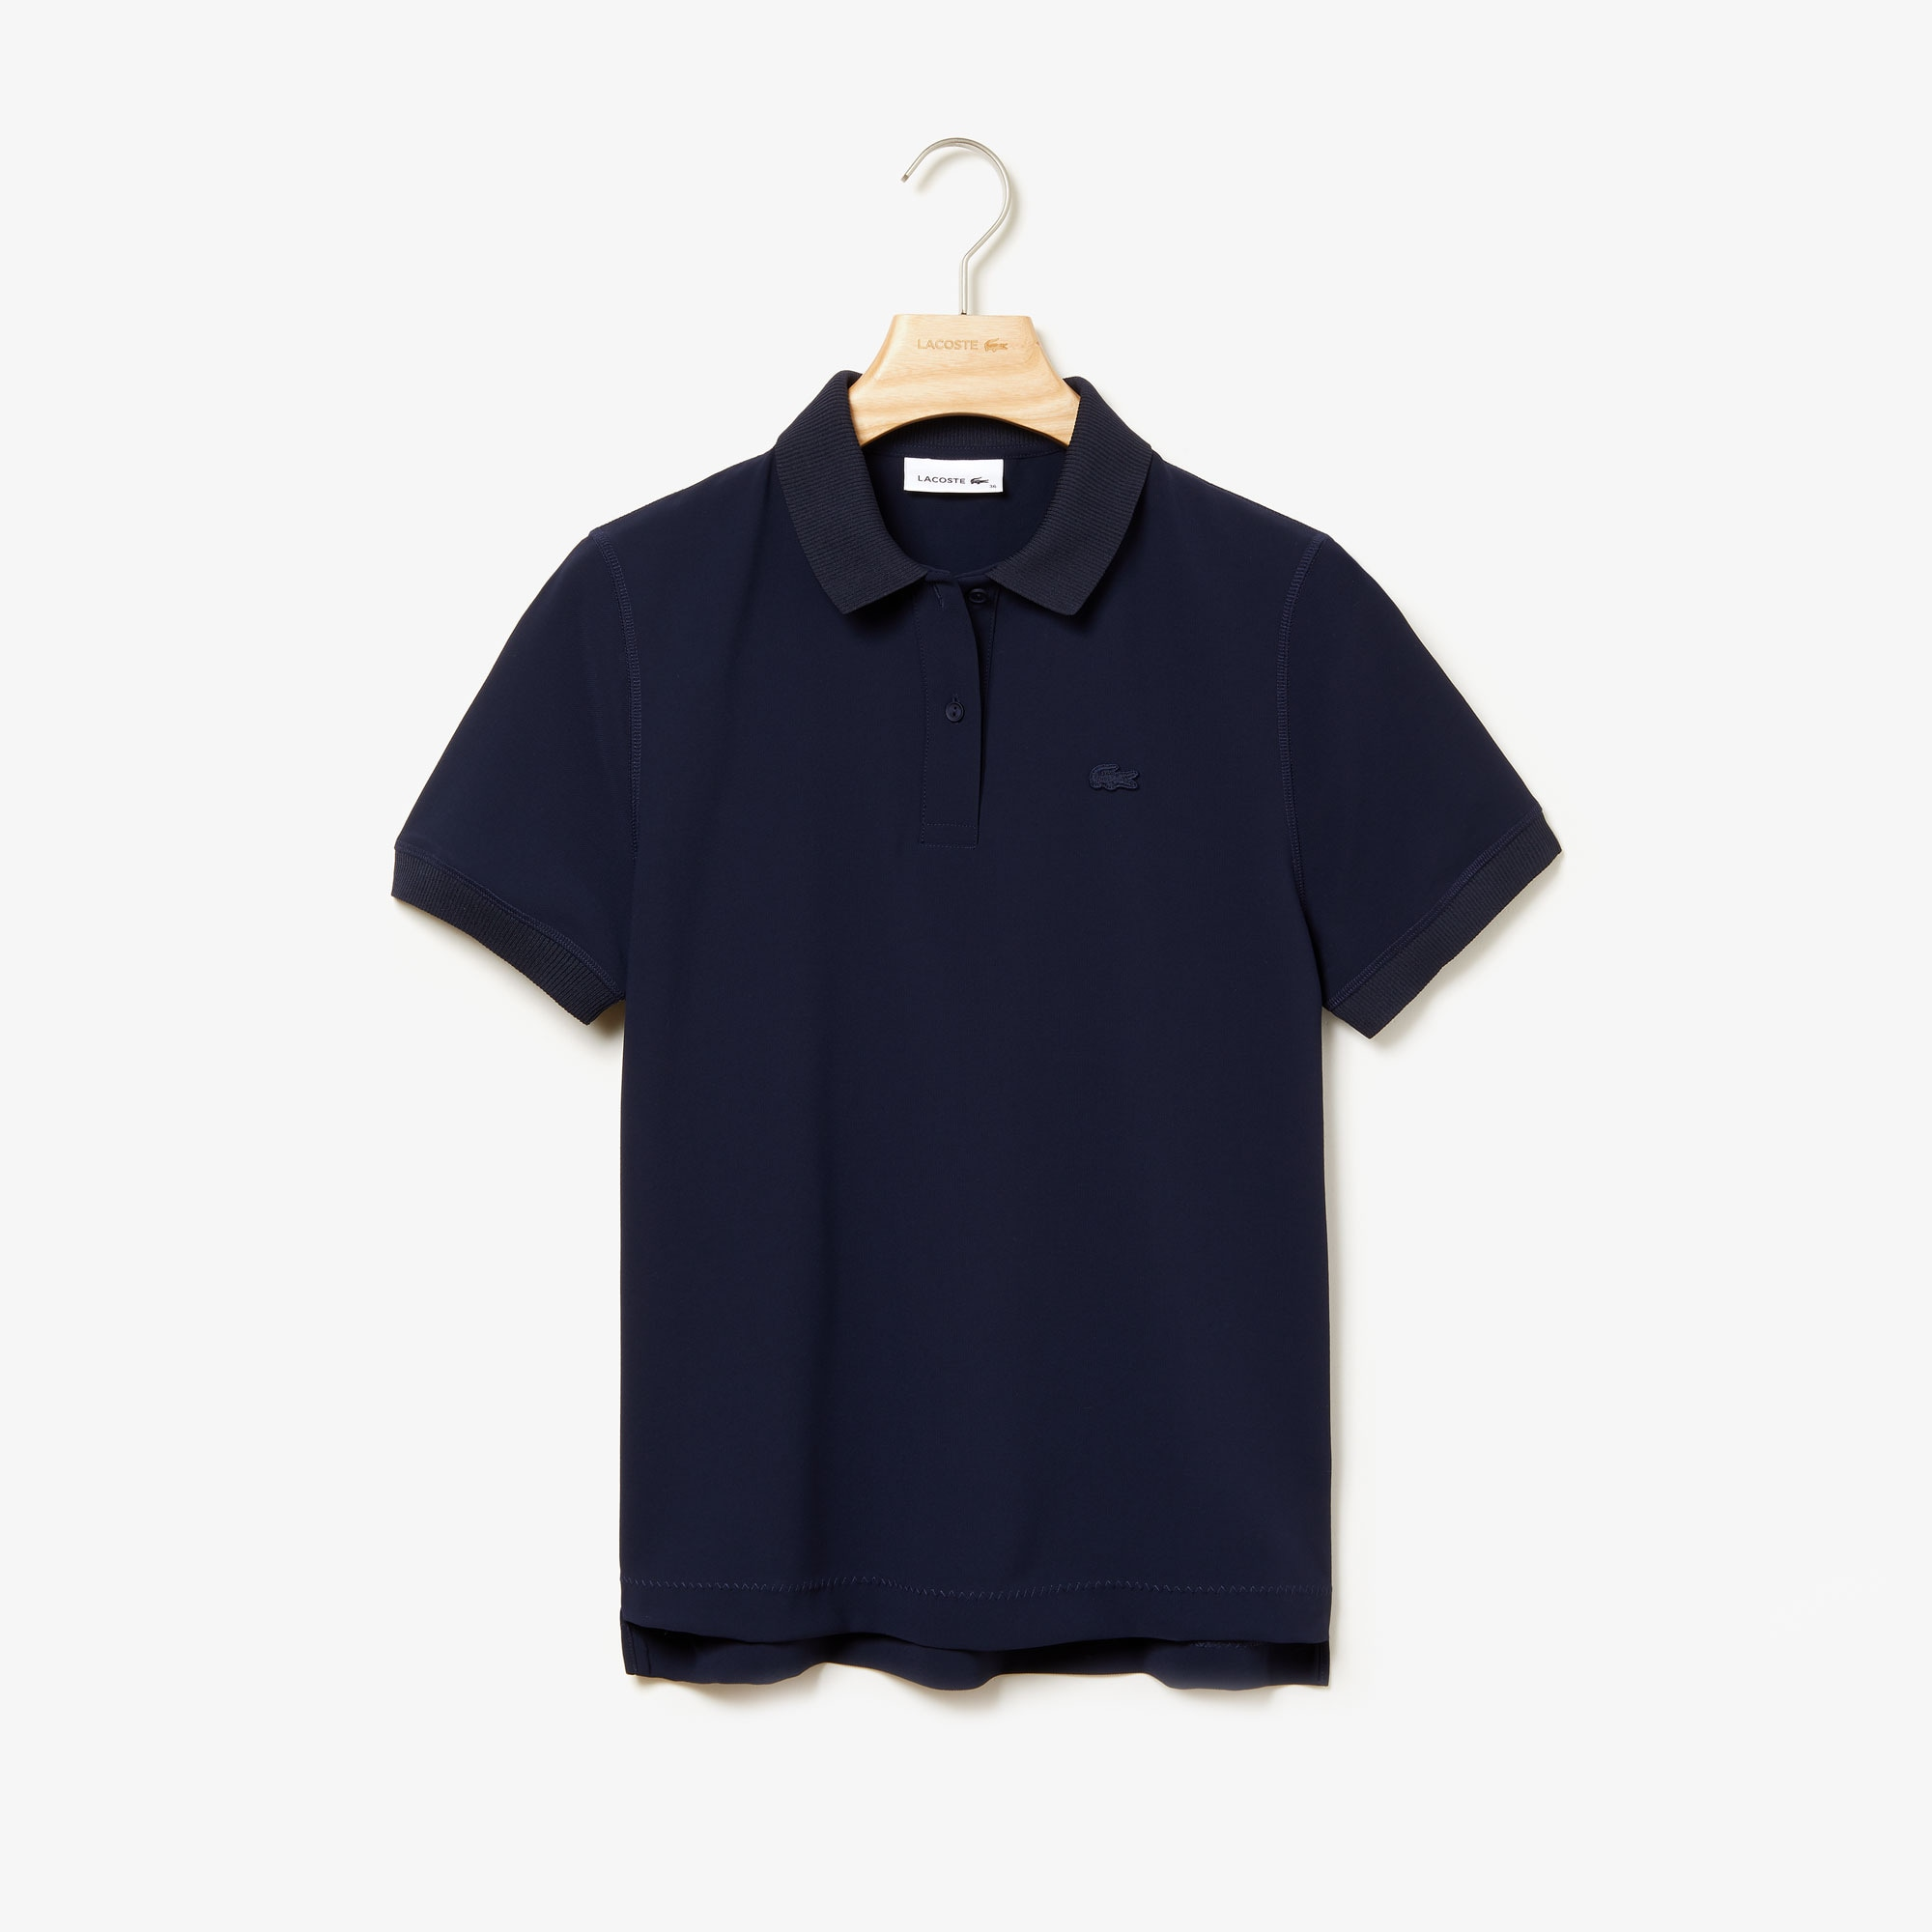 Women's Lacoste Regular Fit Asymmetrical Hem Crepe Polo Shirt